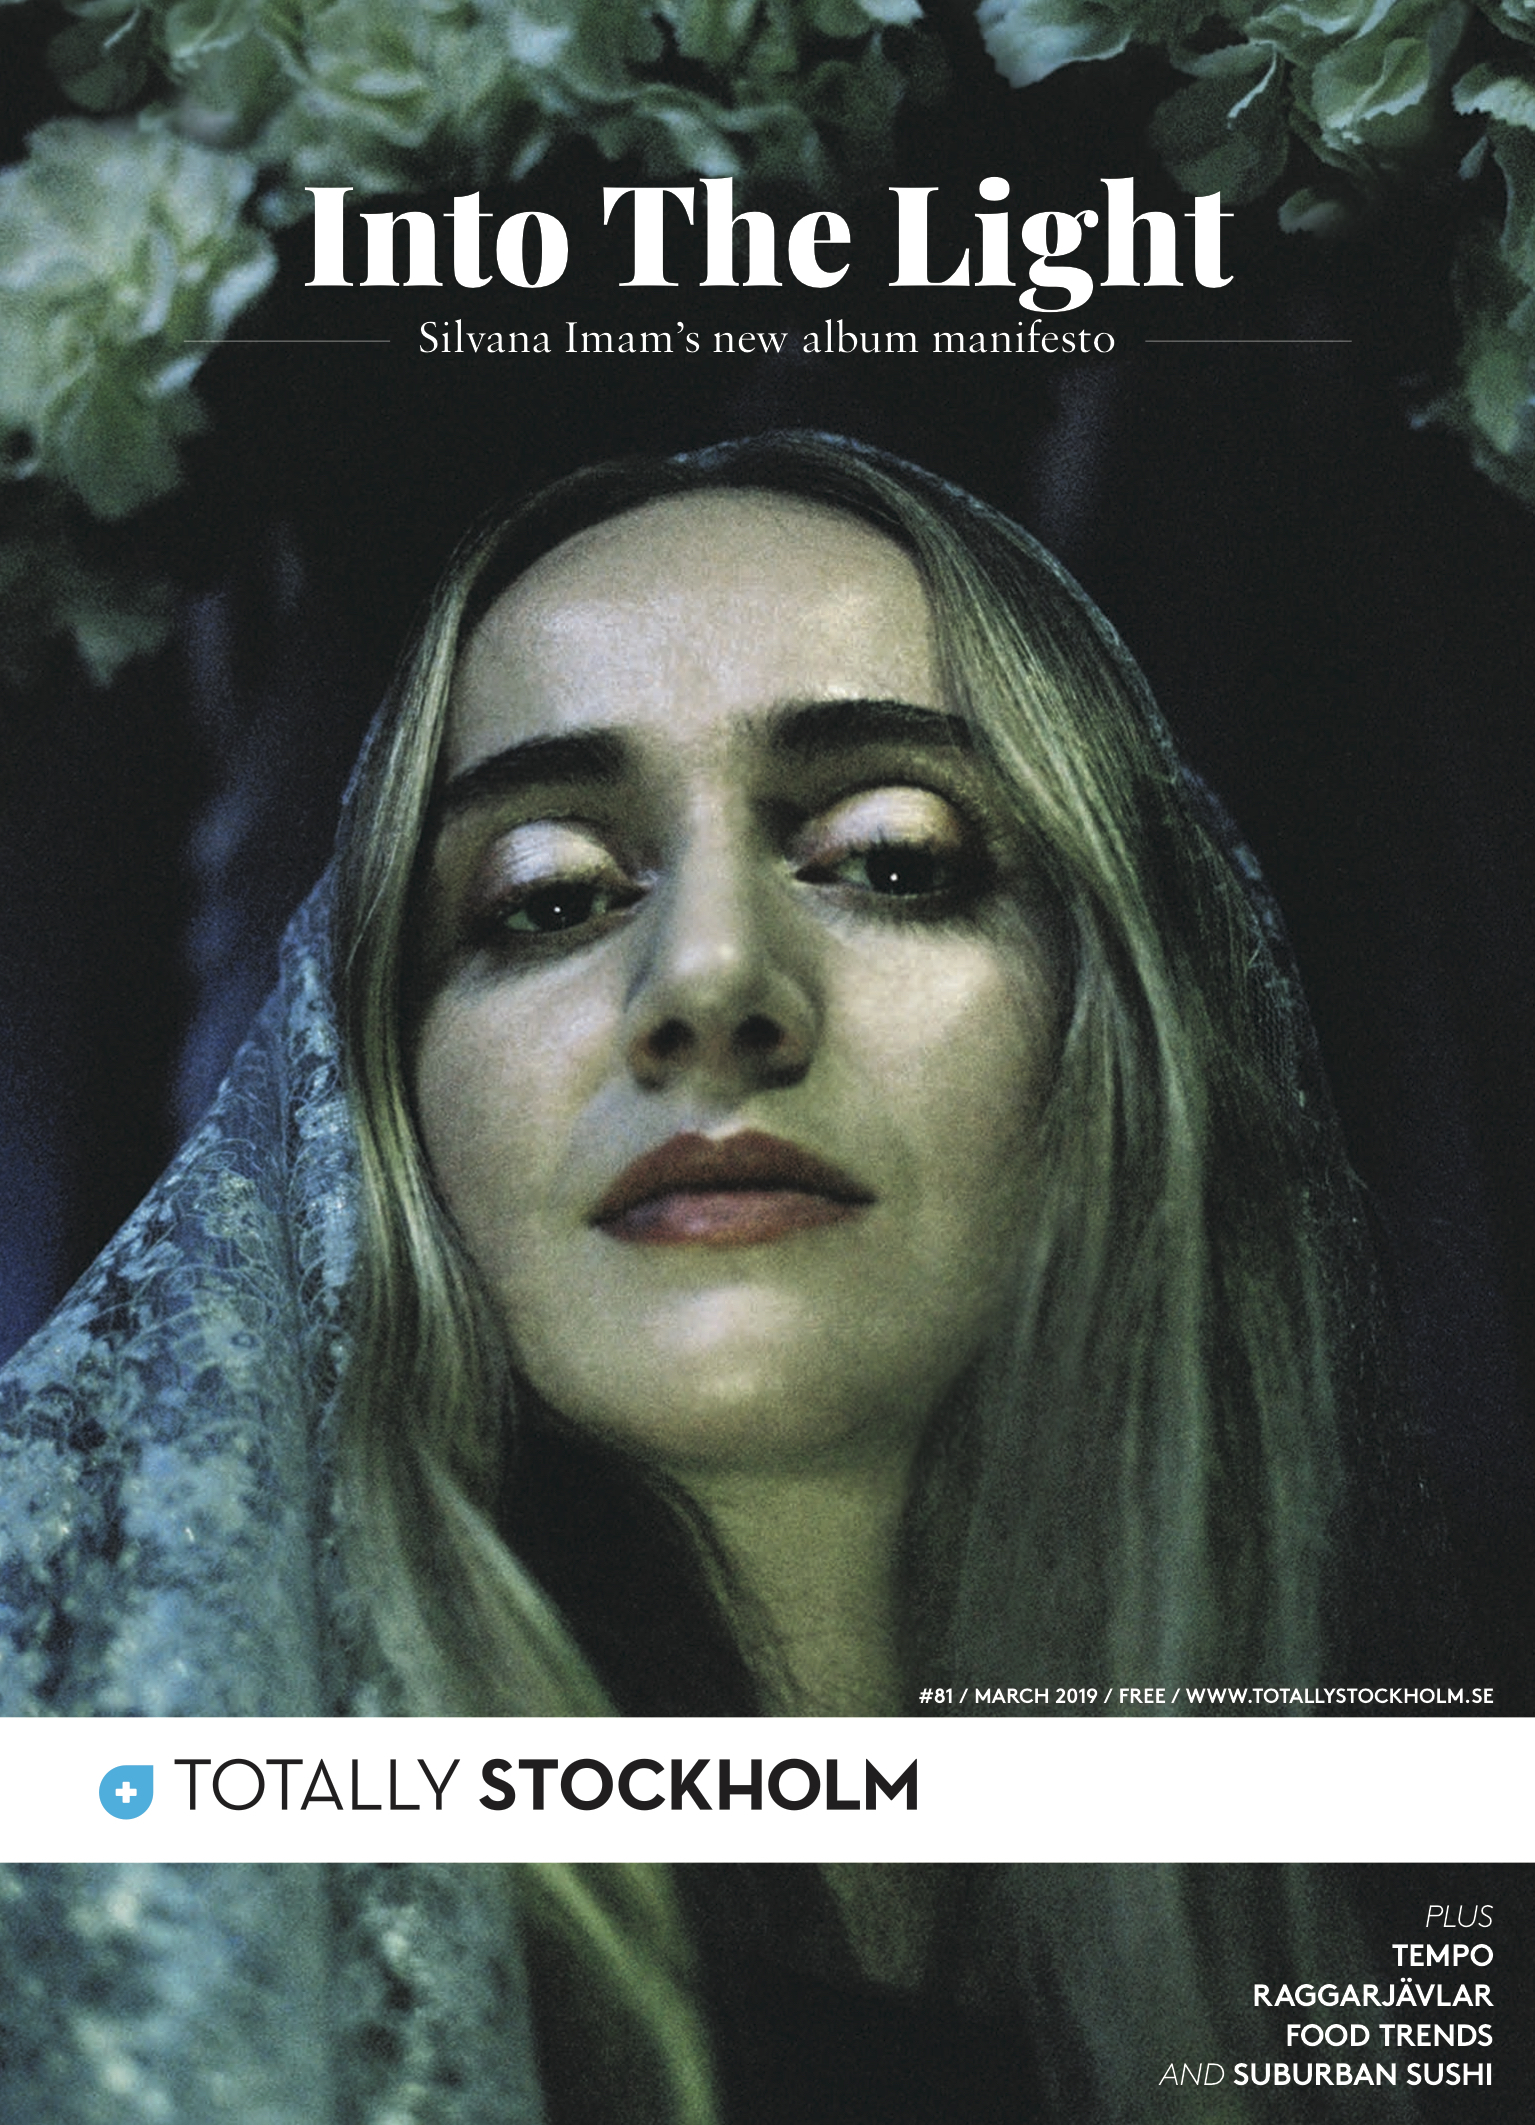 Silvana Totally Sthlm Cover.jpg